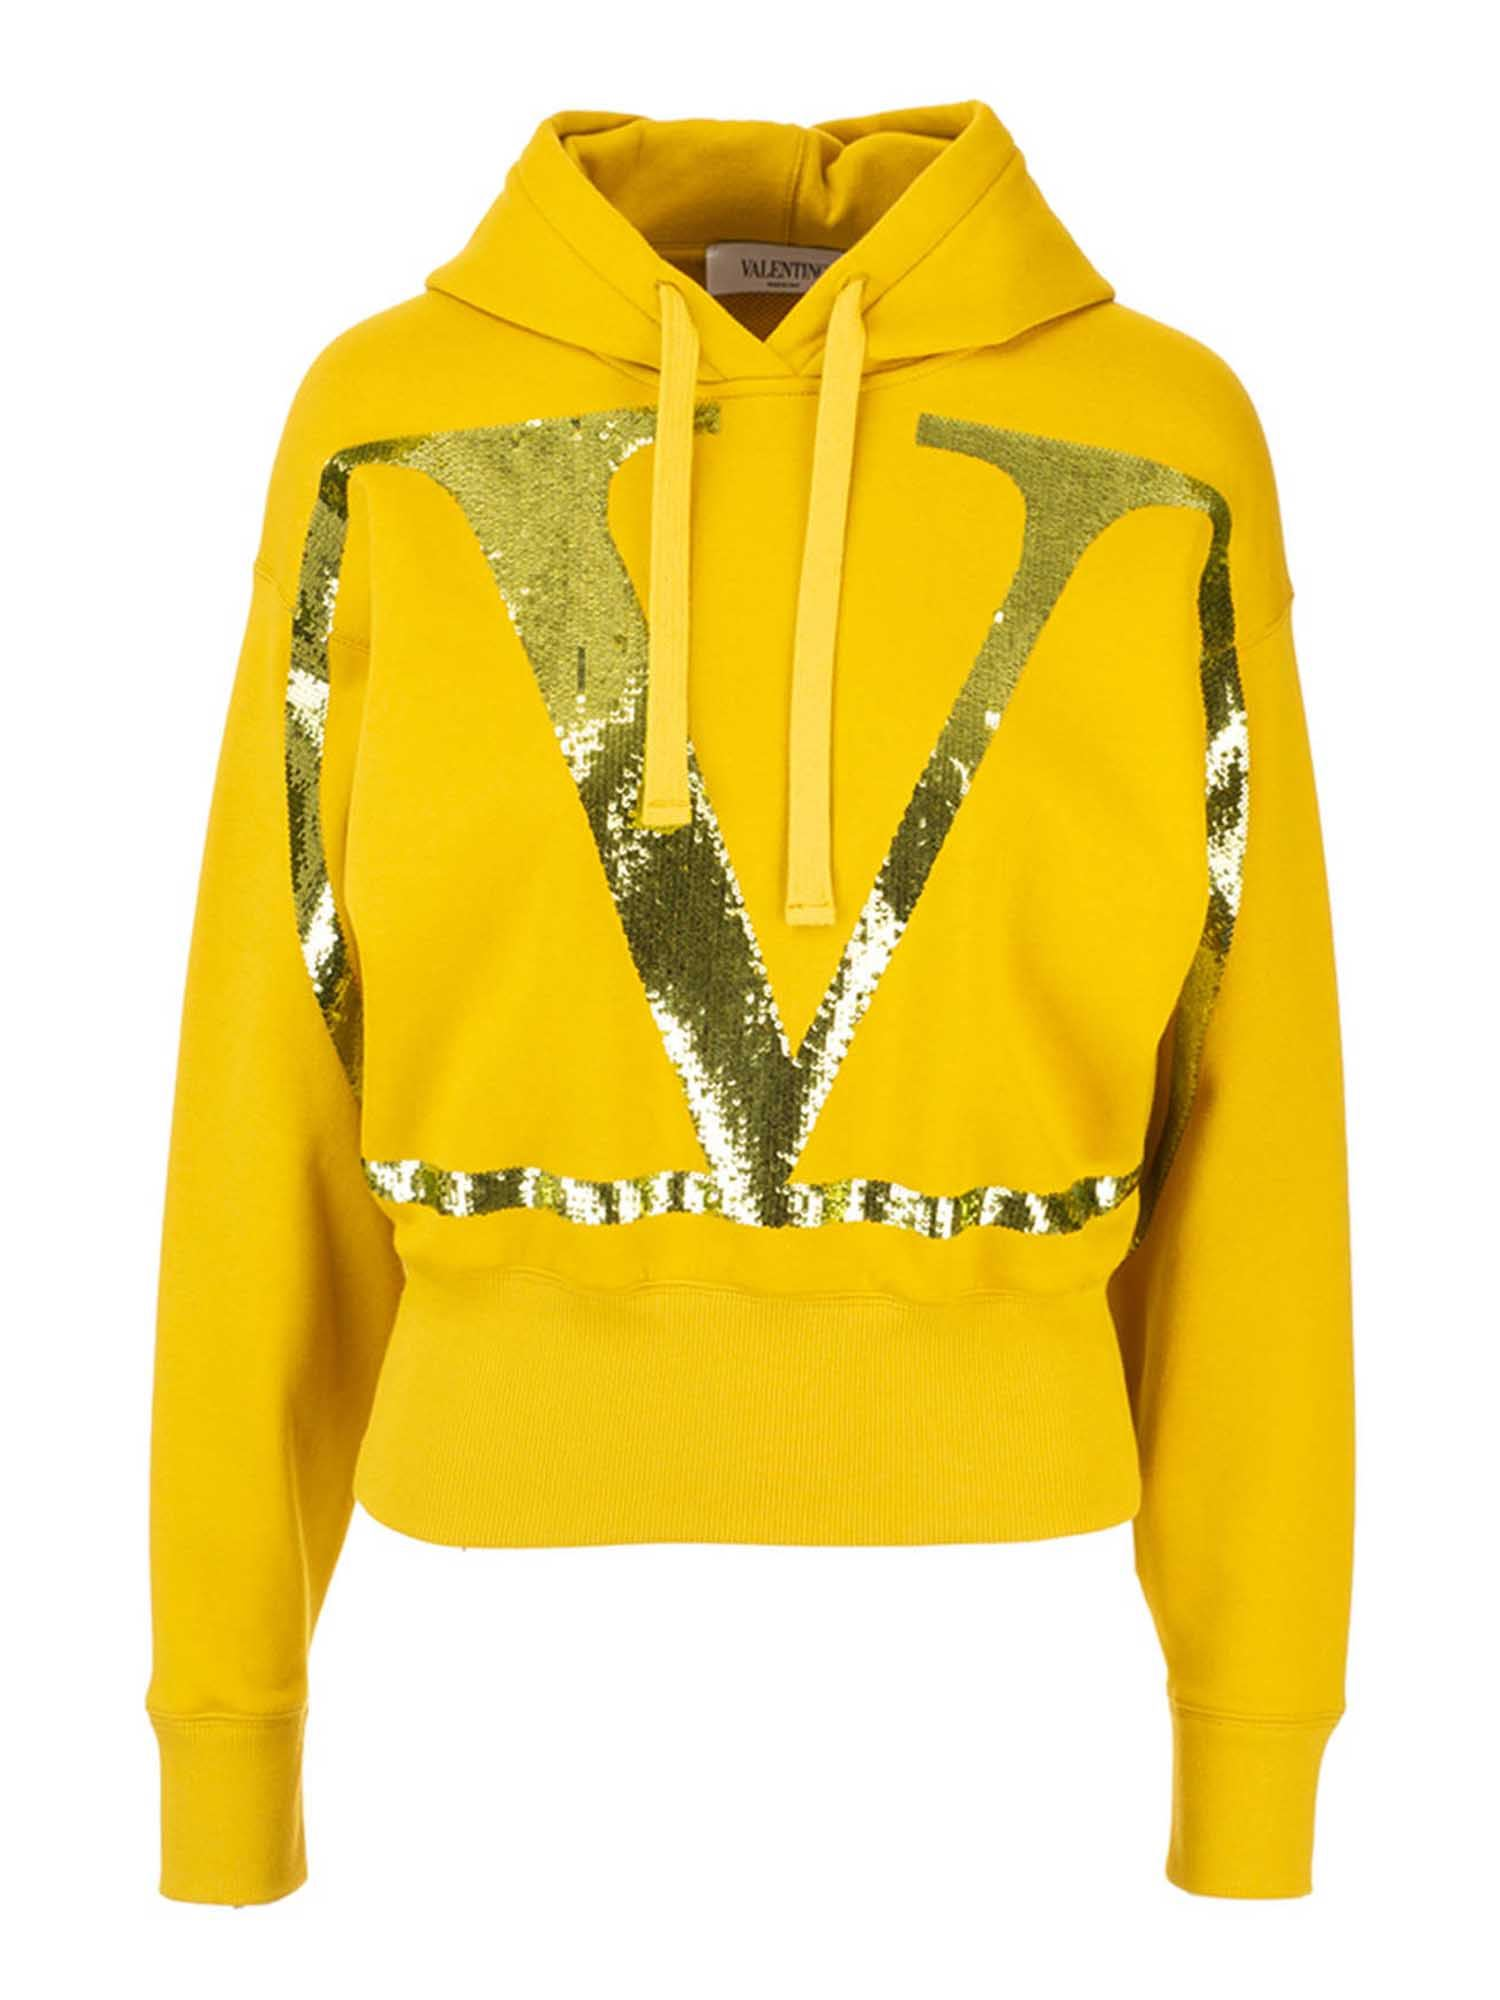 Valentino SEQUIN LOGO SWEATSHIRT IN YELLOW